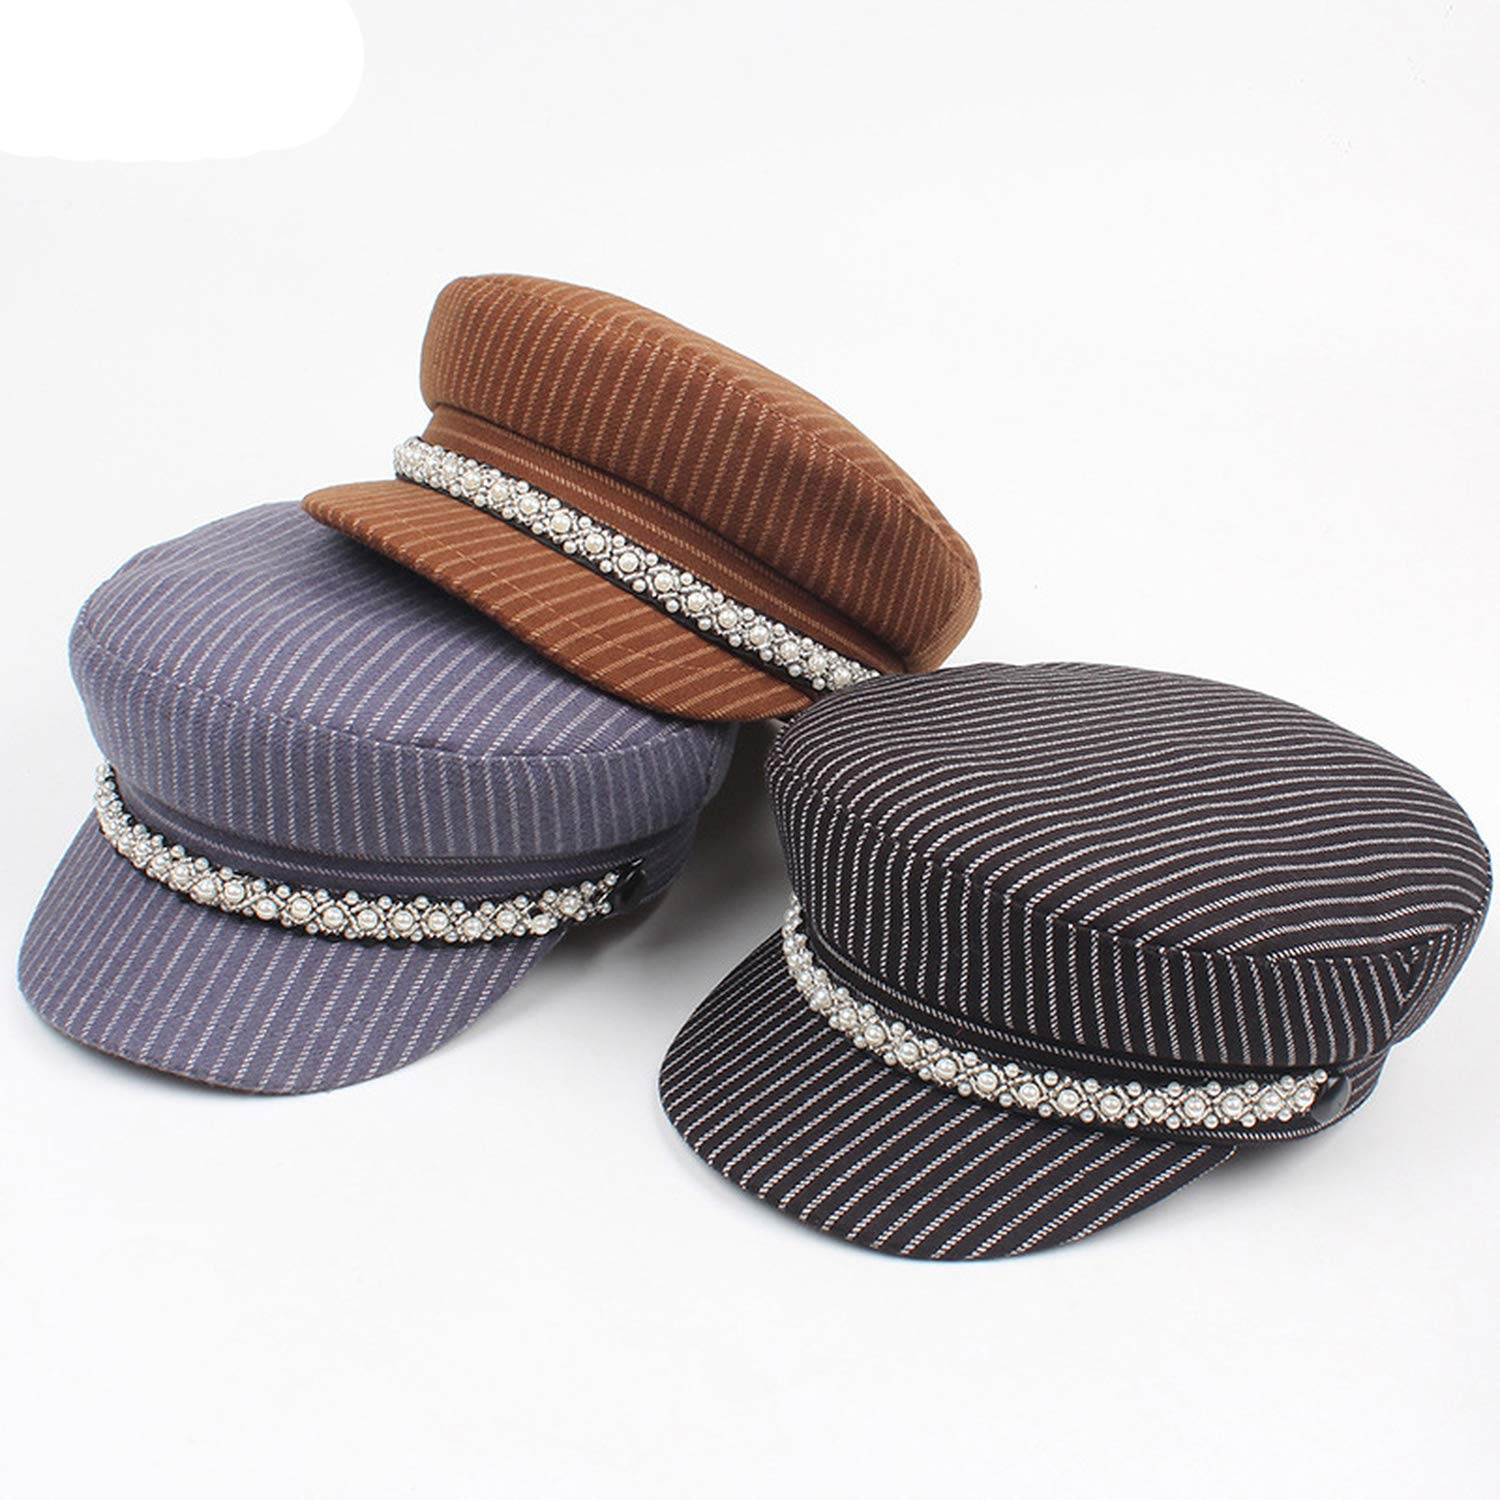 Pearl Newsboy caps Women Wool Striped Newsboy caps Flat top Visor Retro Octagonal hat